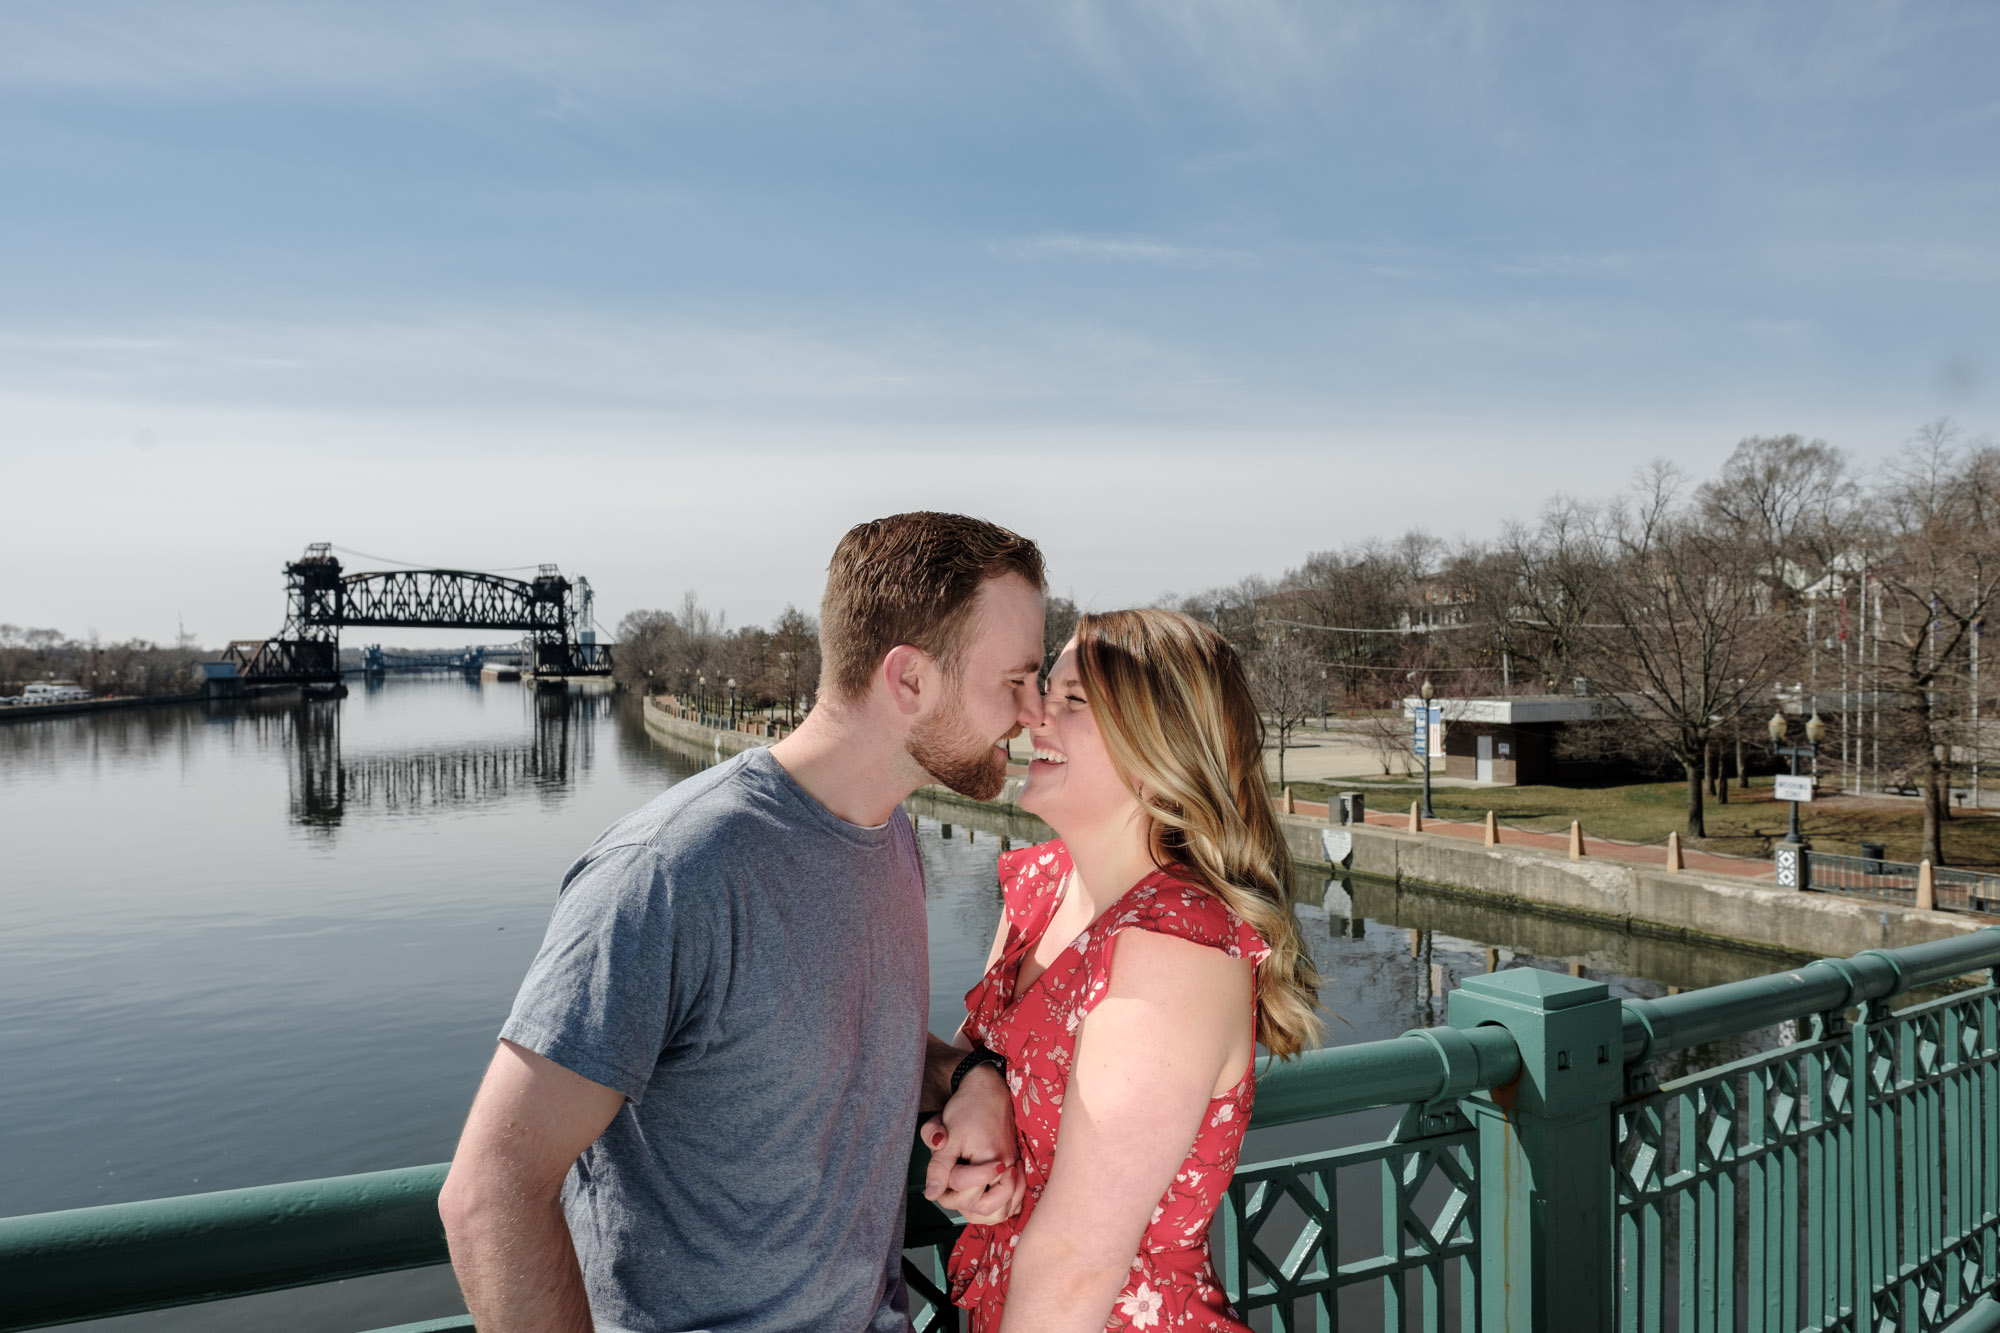 Couple kissing on bridge with beautiful blue sky above the river in Joliet, Illinois